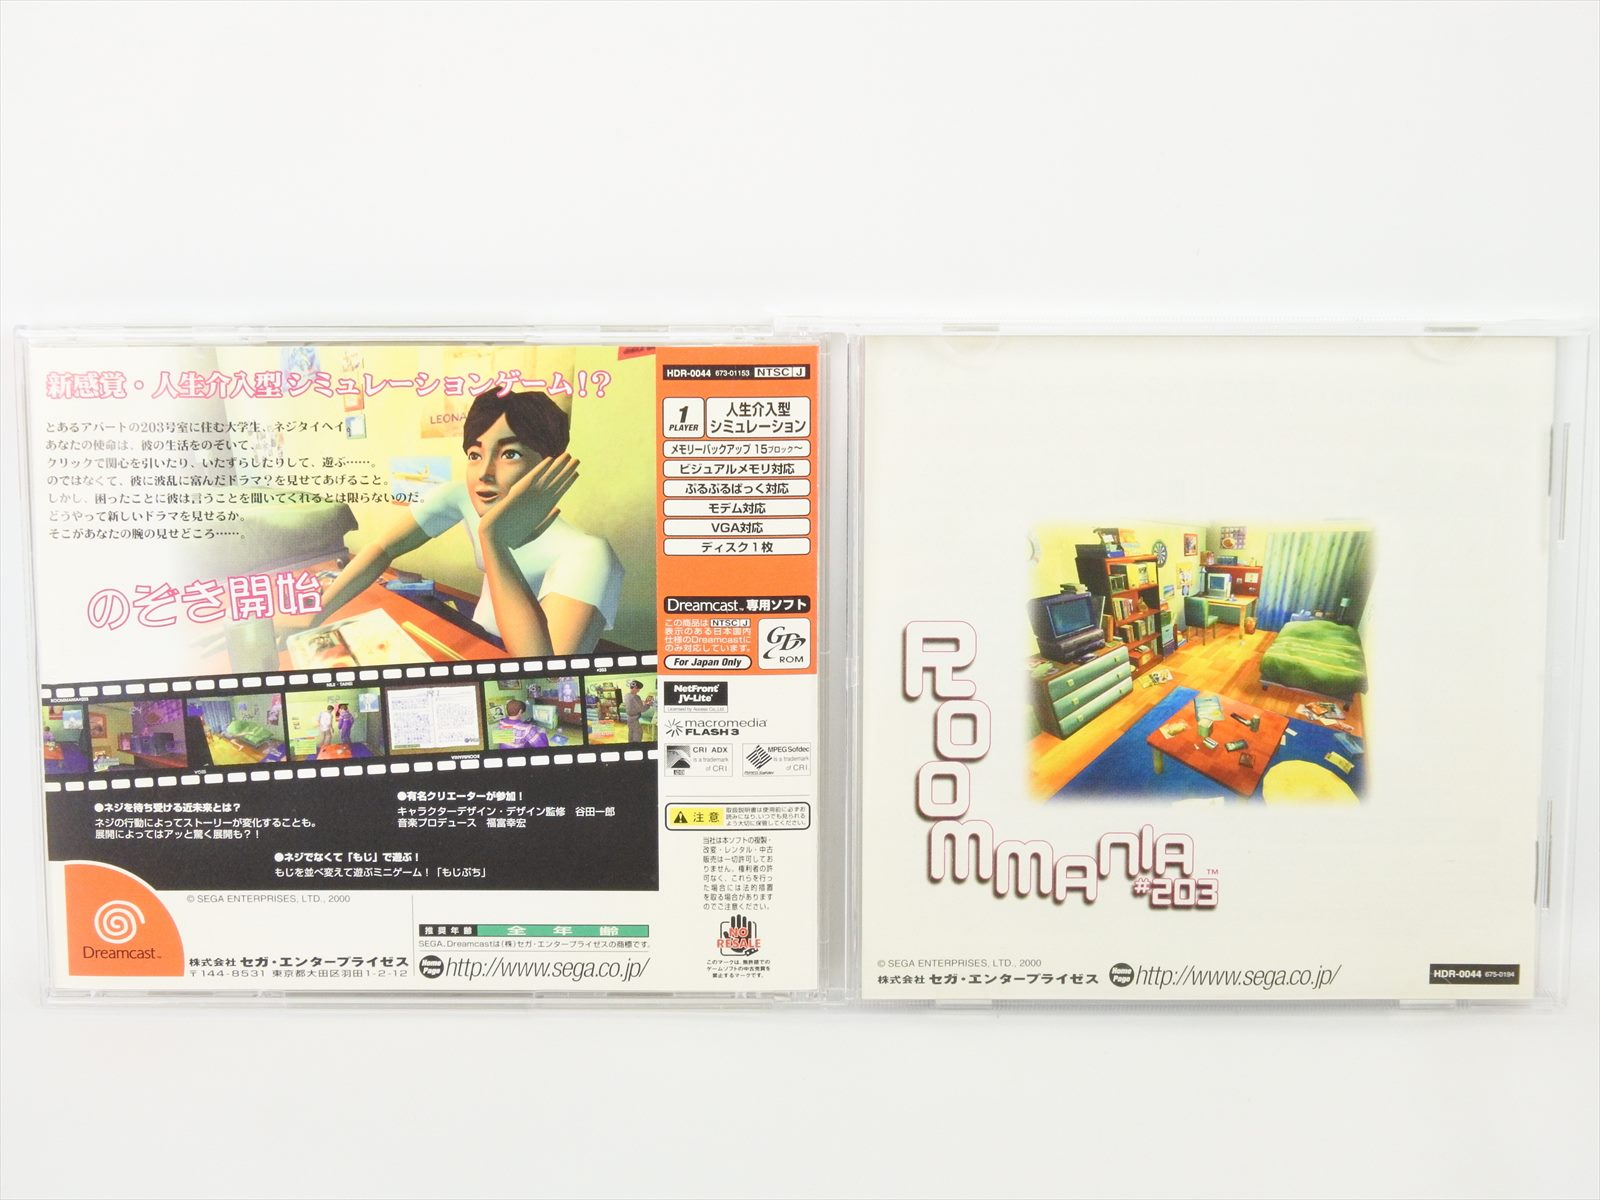 Details about ROOM MANIA 203 Roommania Dreamcast Sega Japan Game dc